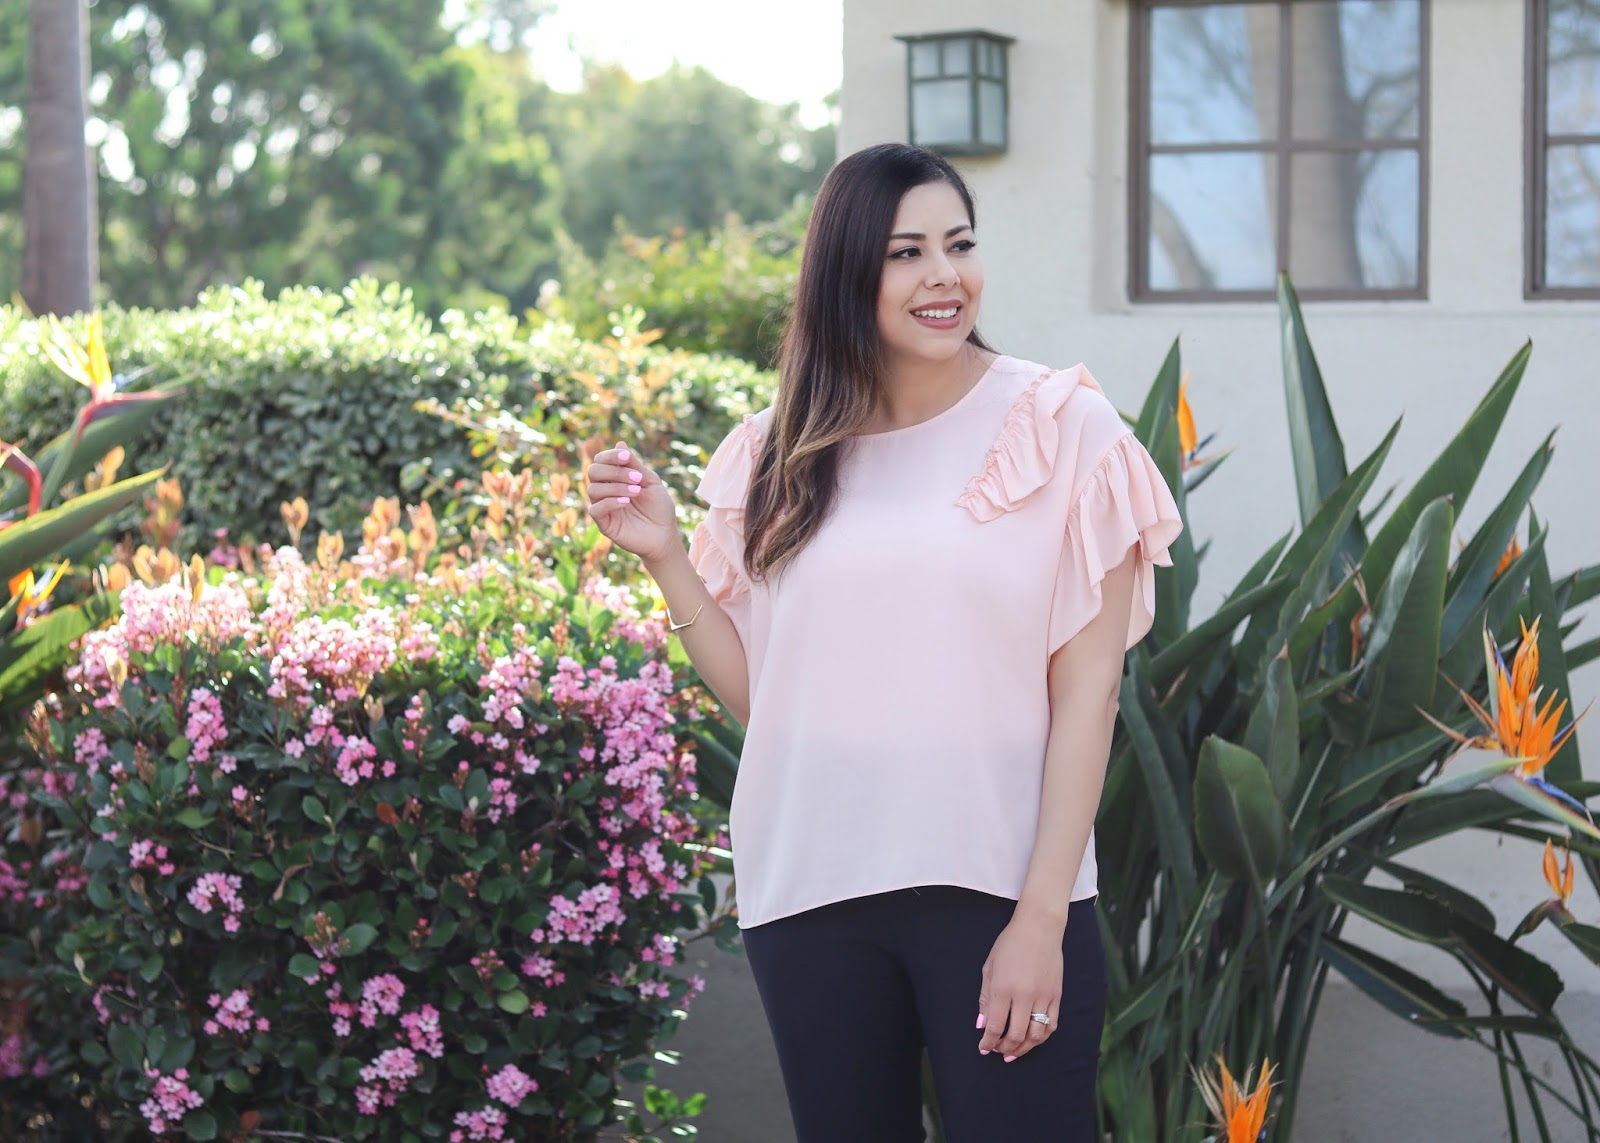 pink ruffle top, blush affordable top, libby edelman blush top